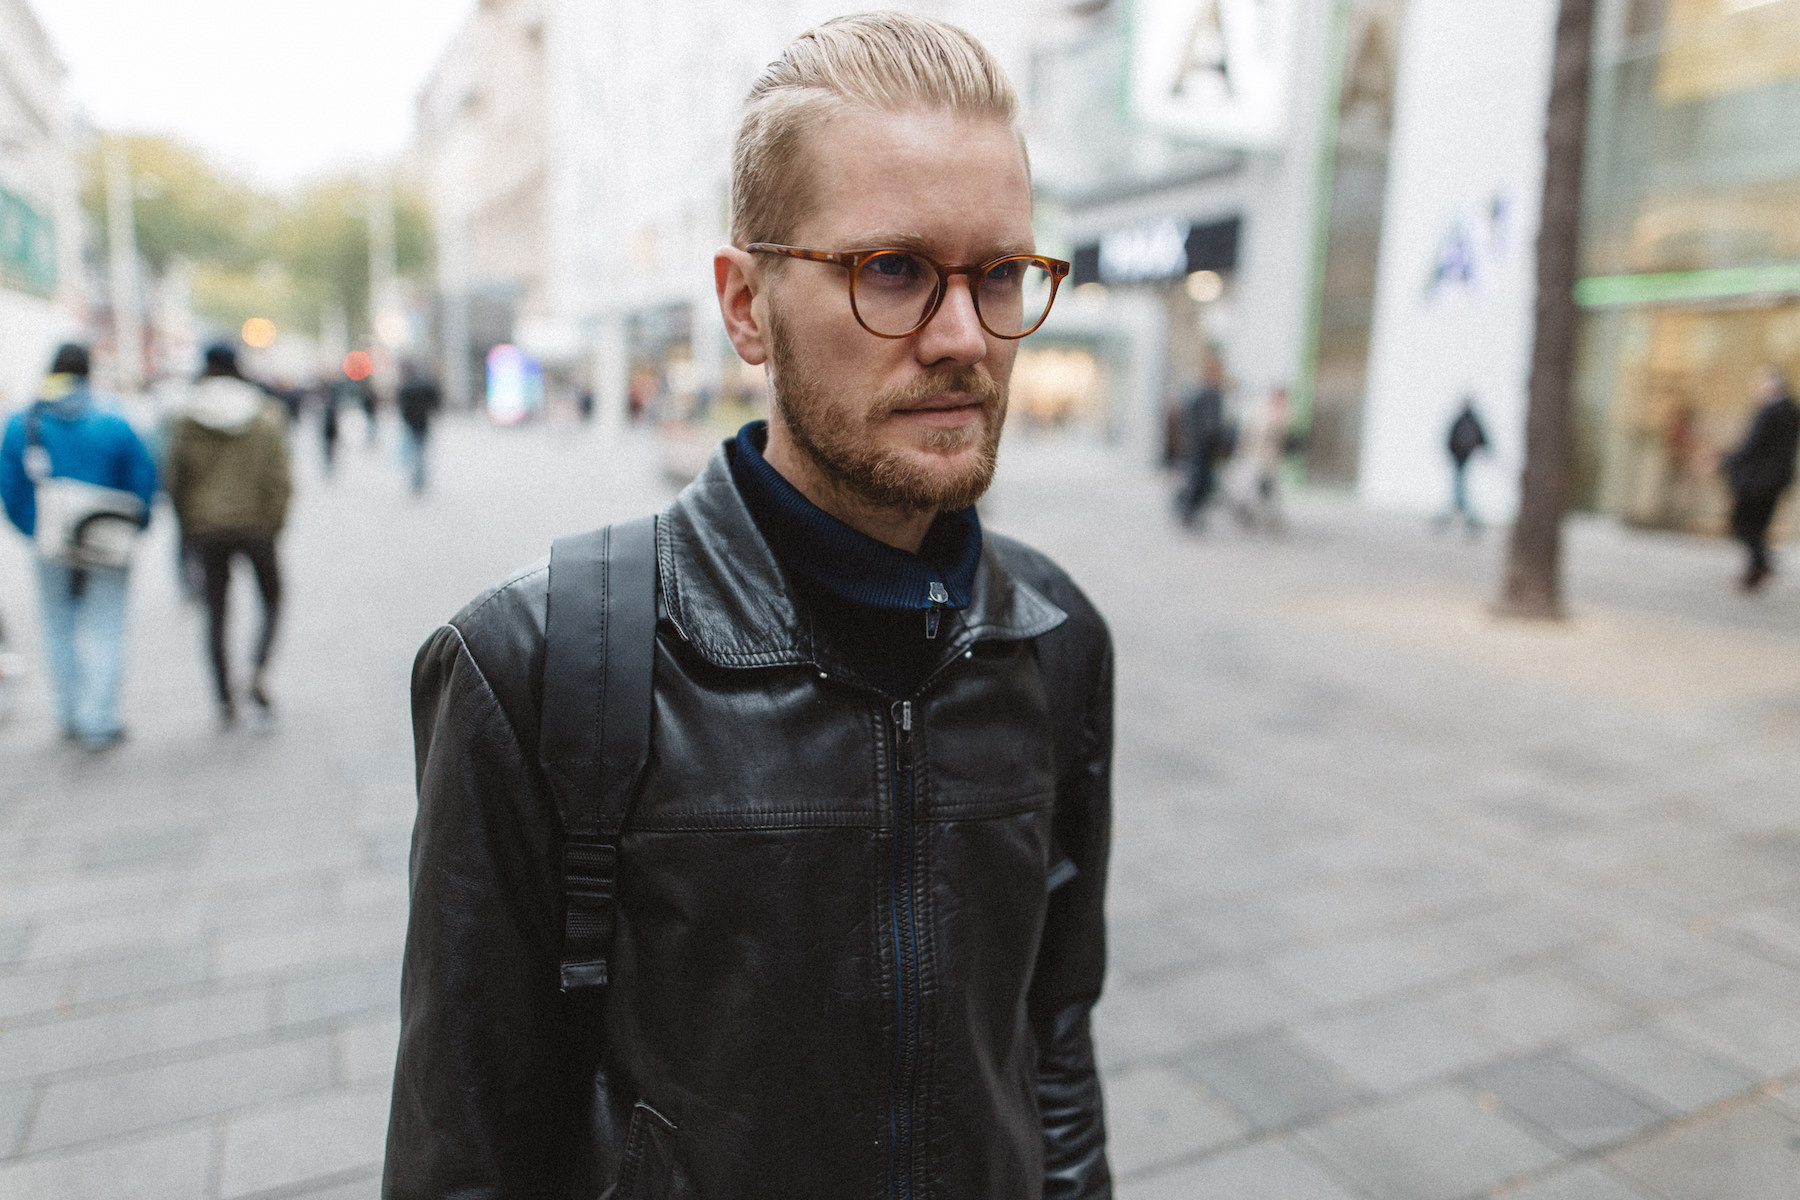 Stylish Beards on the Streets of Vienna with Braun_Wear a beard as an accessory_Meanwhile in Awesometown_Austrian Mens Fashion and Lifestyle Blogger4